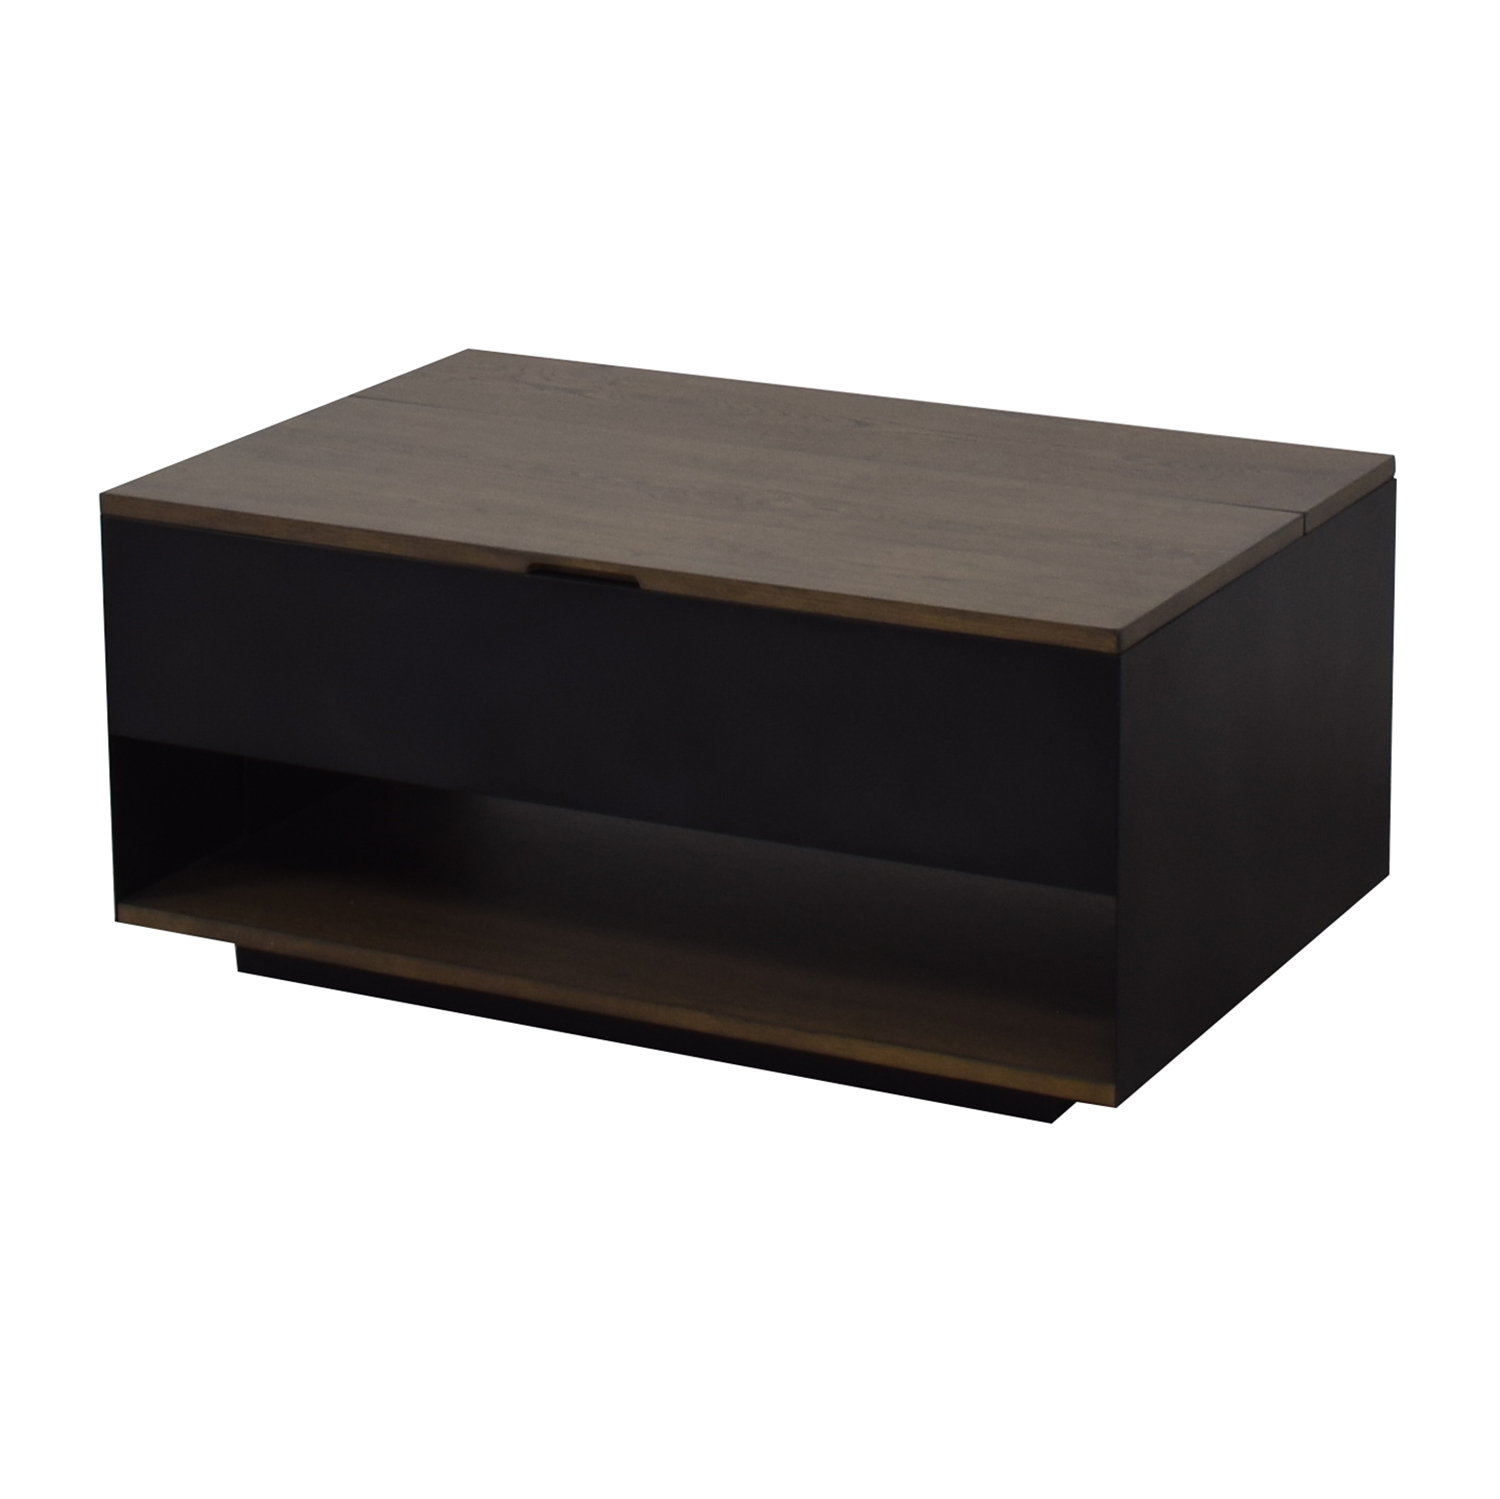 West Elm West Elm Massaro Pop Up Coffee Table dimensions